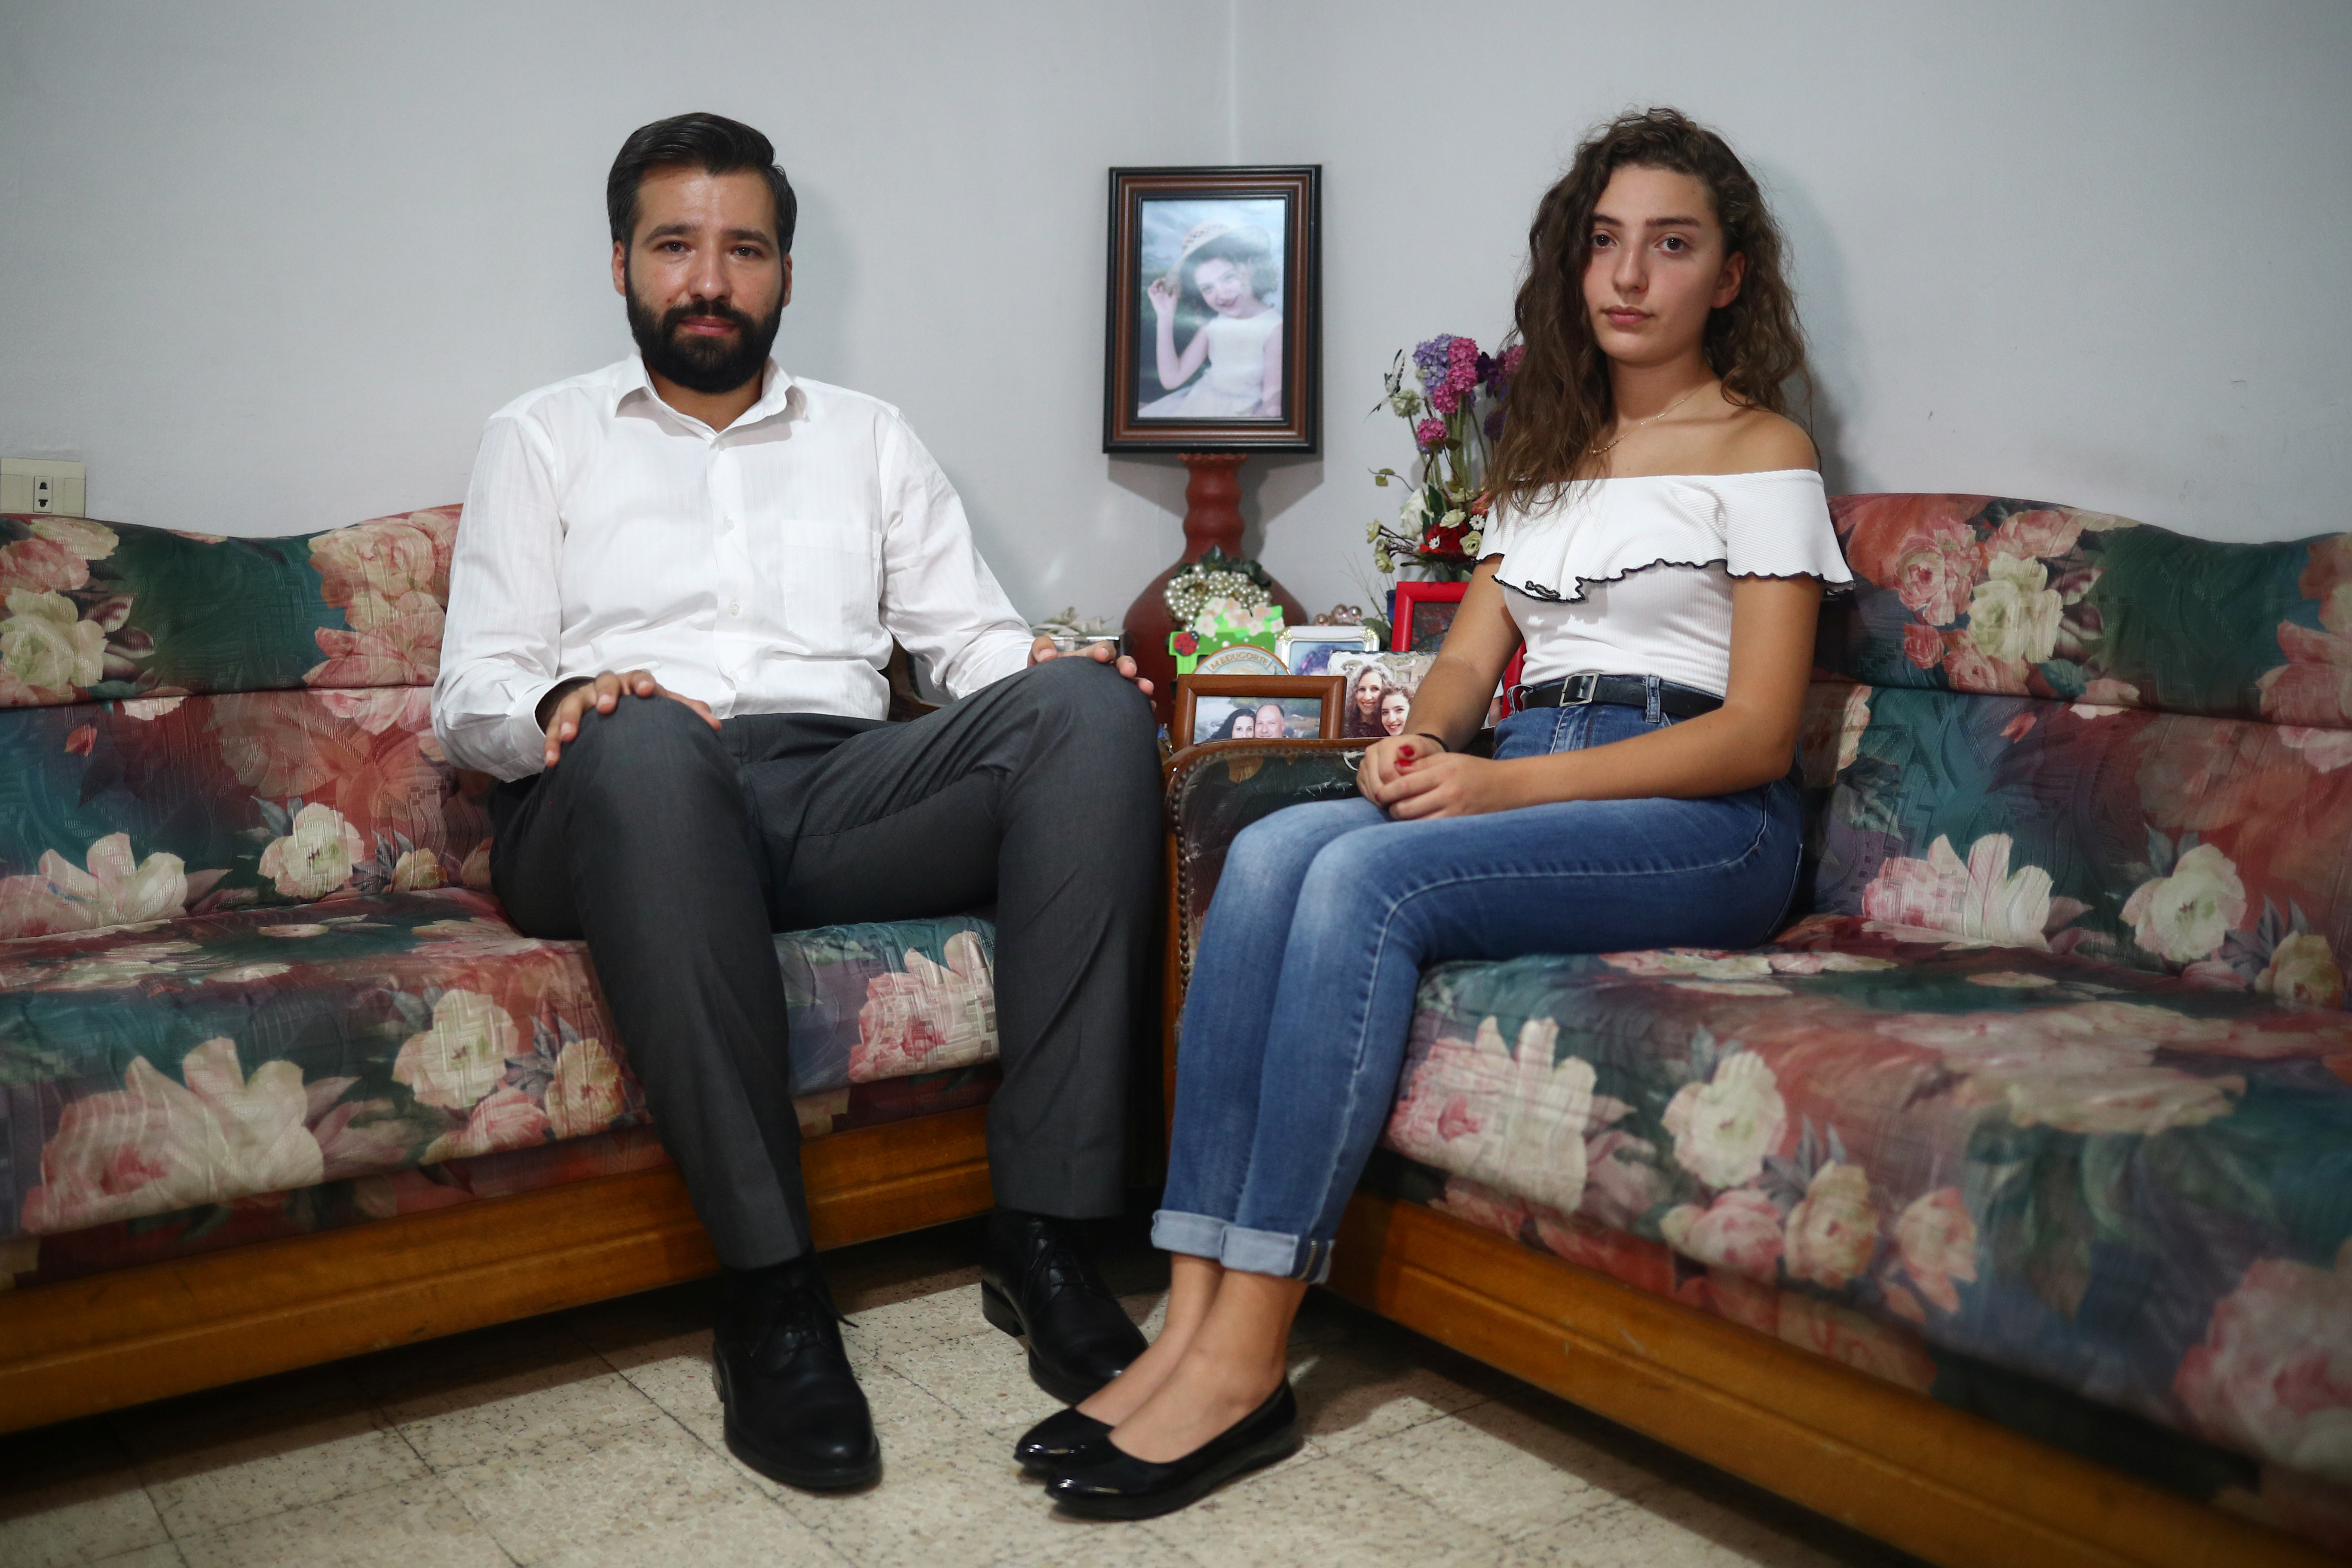 Elie Hasrouty and Tatiana Hasrouty pose for a photograph as they wait for news about their father Ghassan Hasrouty, a missing silo employee, following Tuesday's blast in Beirut's port area, in the family home in Beirut, Lebanon, August 9, 2020. REUTERS/Hannah McKay